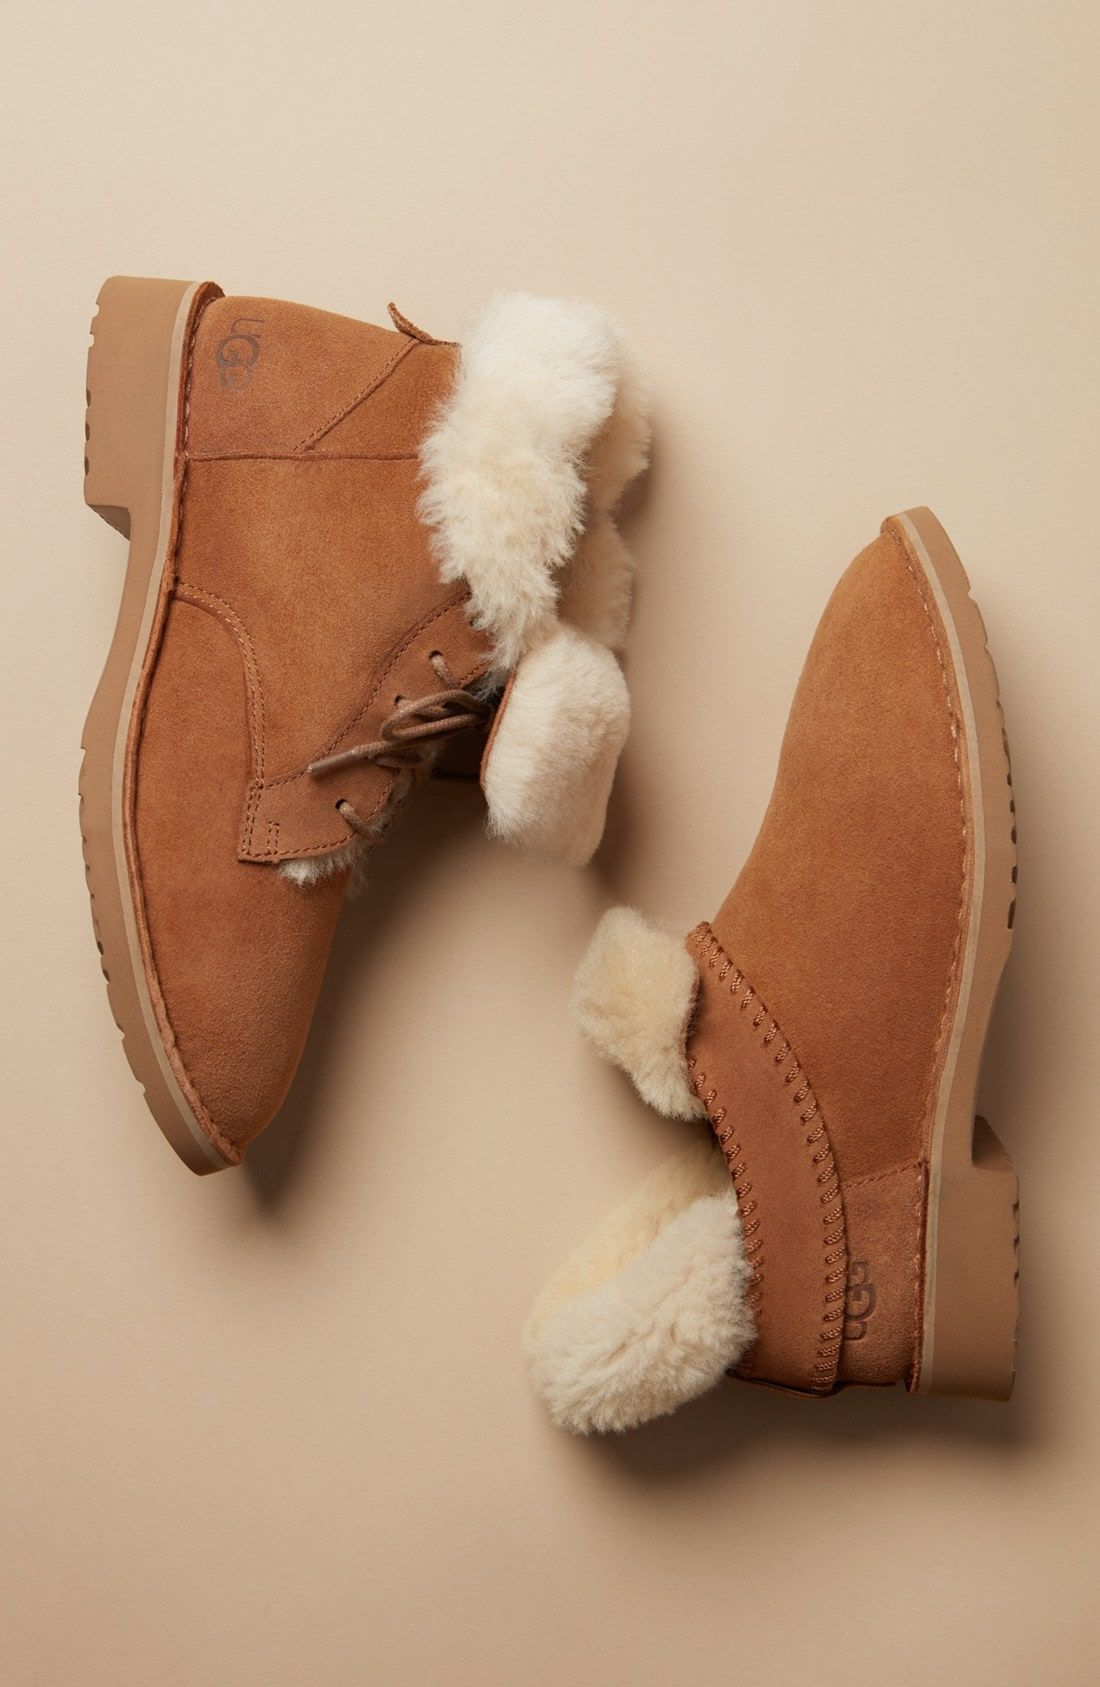 eb8623d1a9a Ugg 'Mckay' Water Resistant Bootie (Women), Chestnut Suede | Uggs in ...